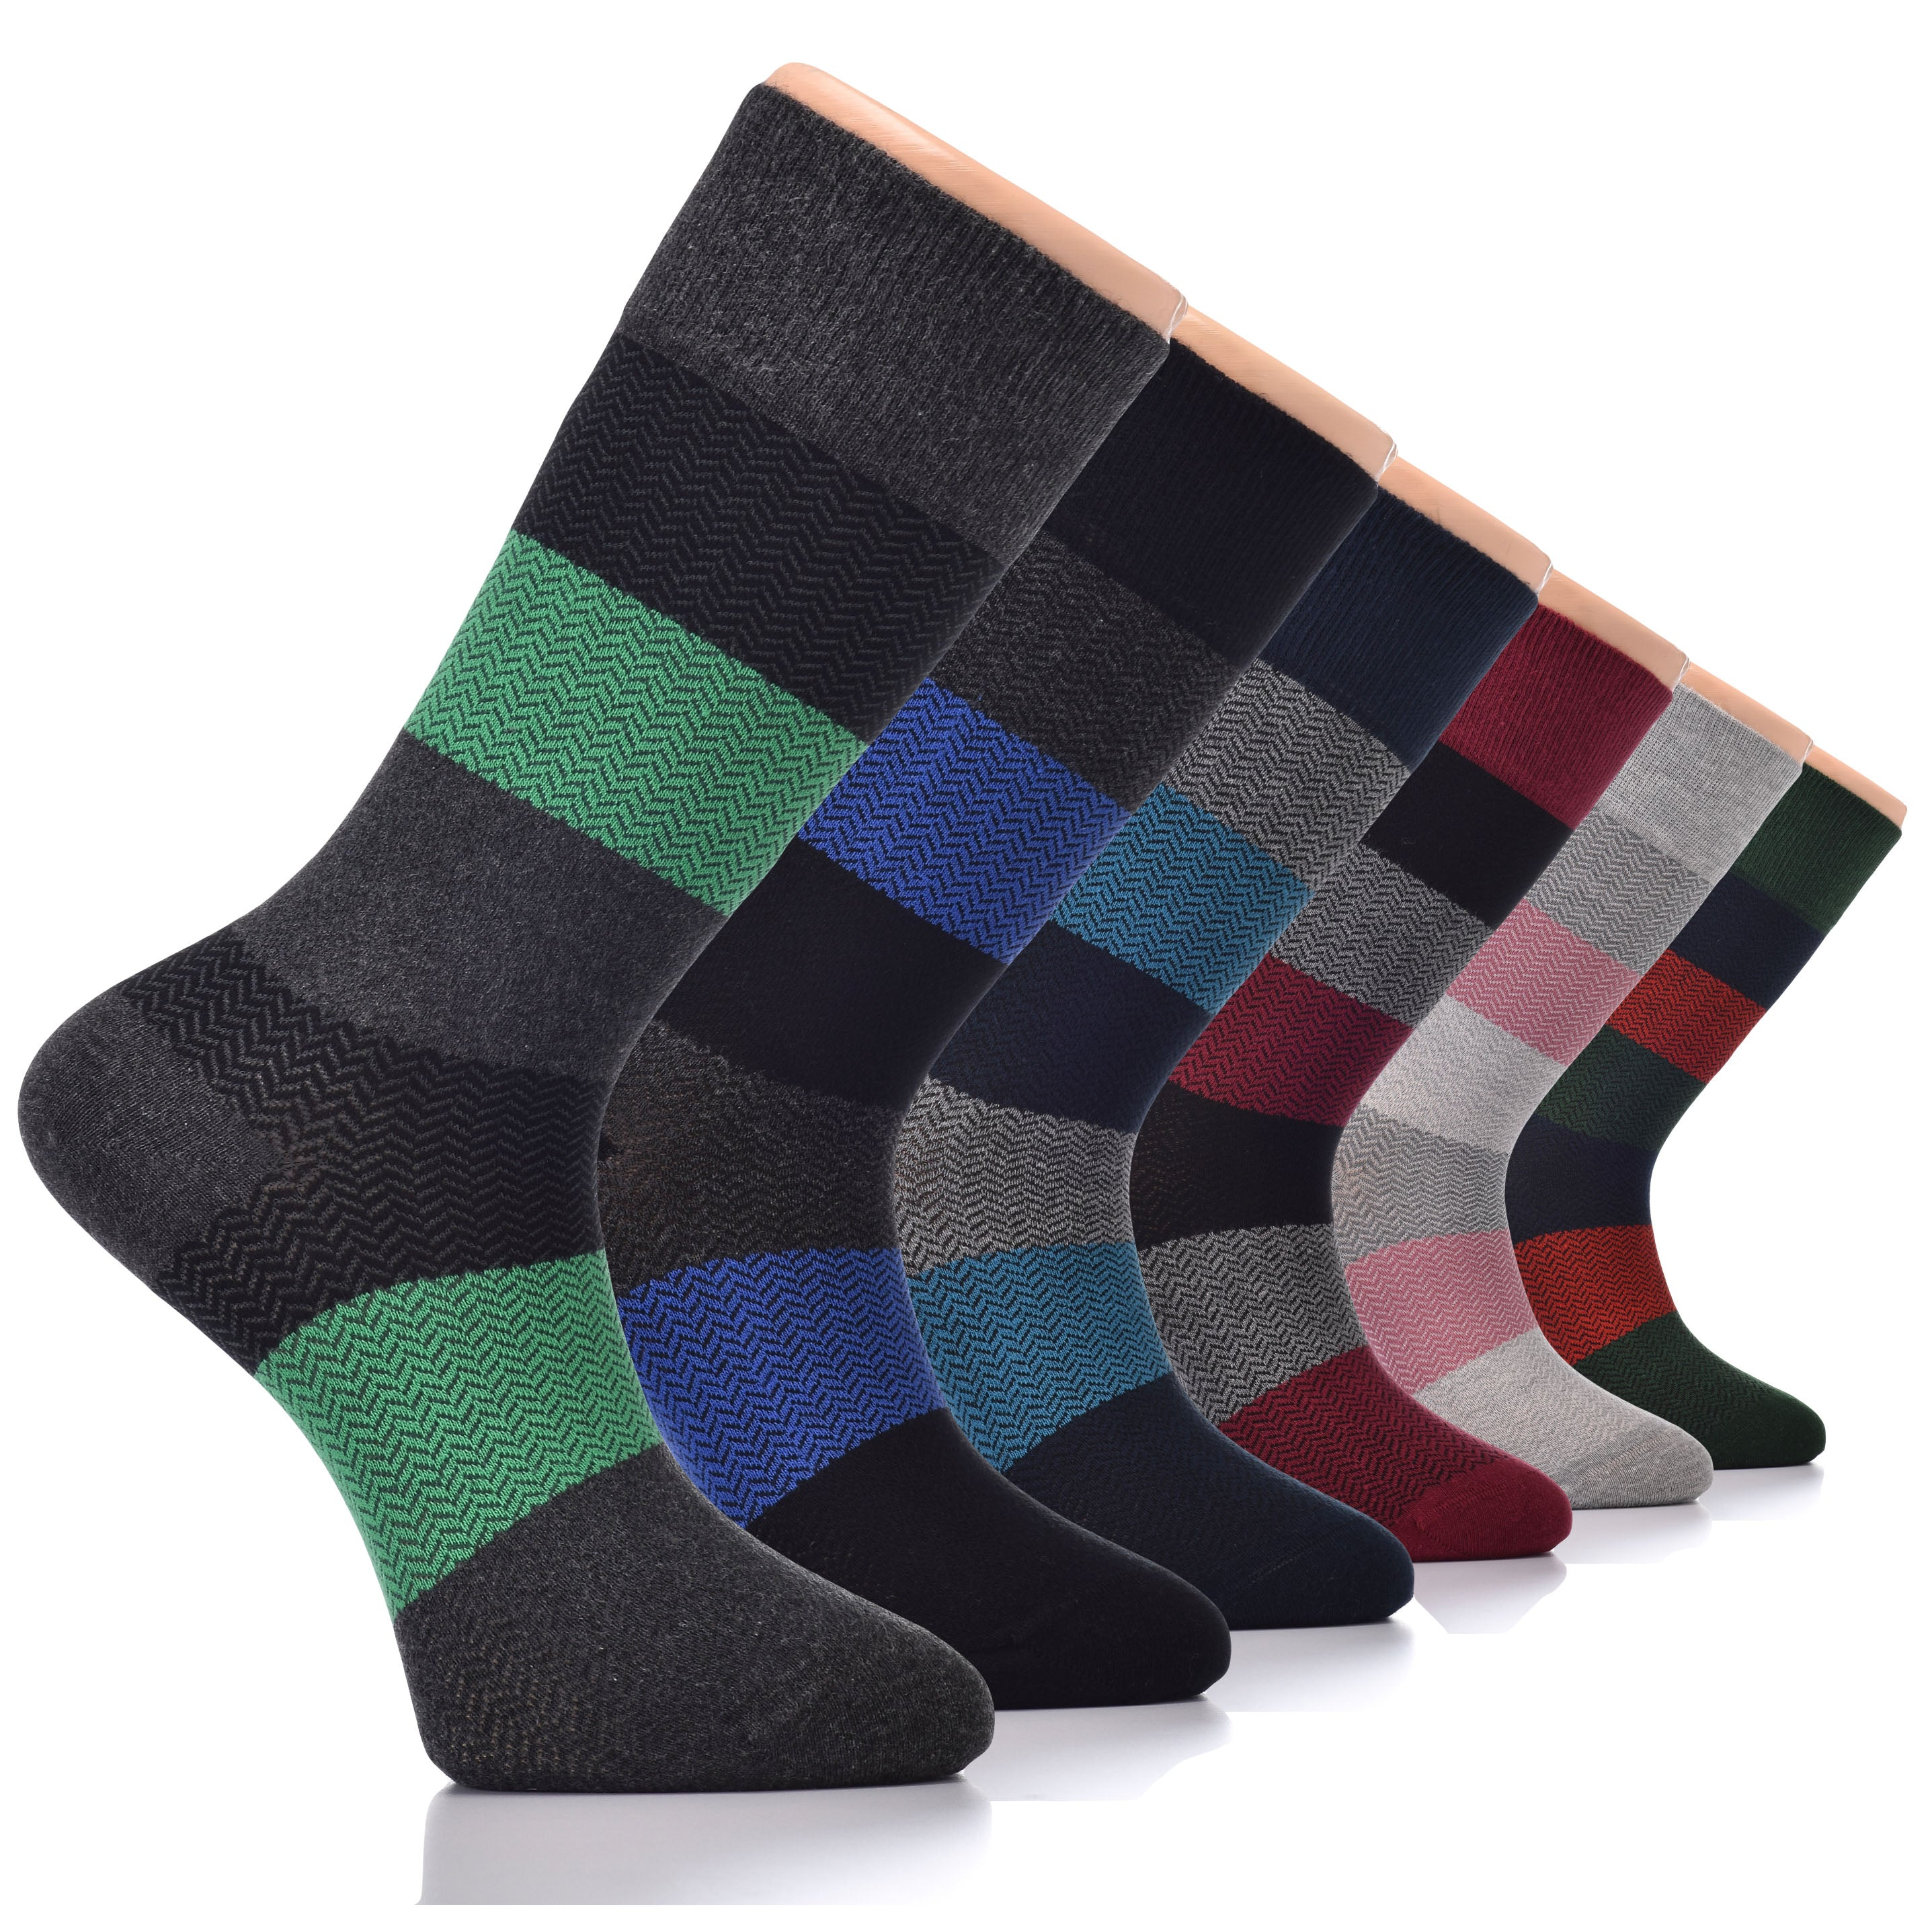 Hugh Ugoli Men's Dress Socks Bamboo Seamless Toe Soft Funky Business Thin Crew Socks, Shoe Size: 7-12